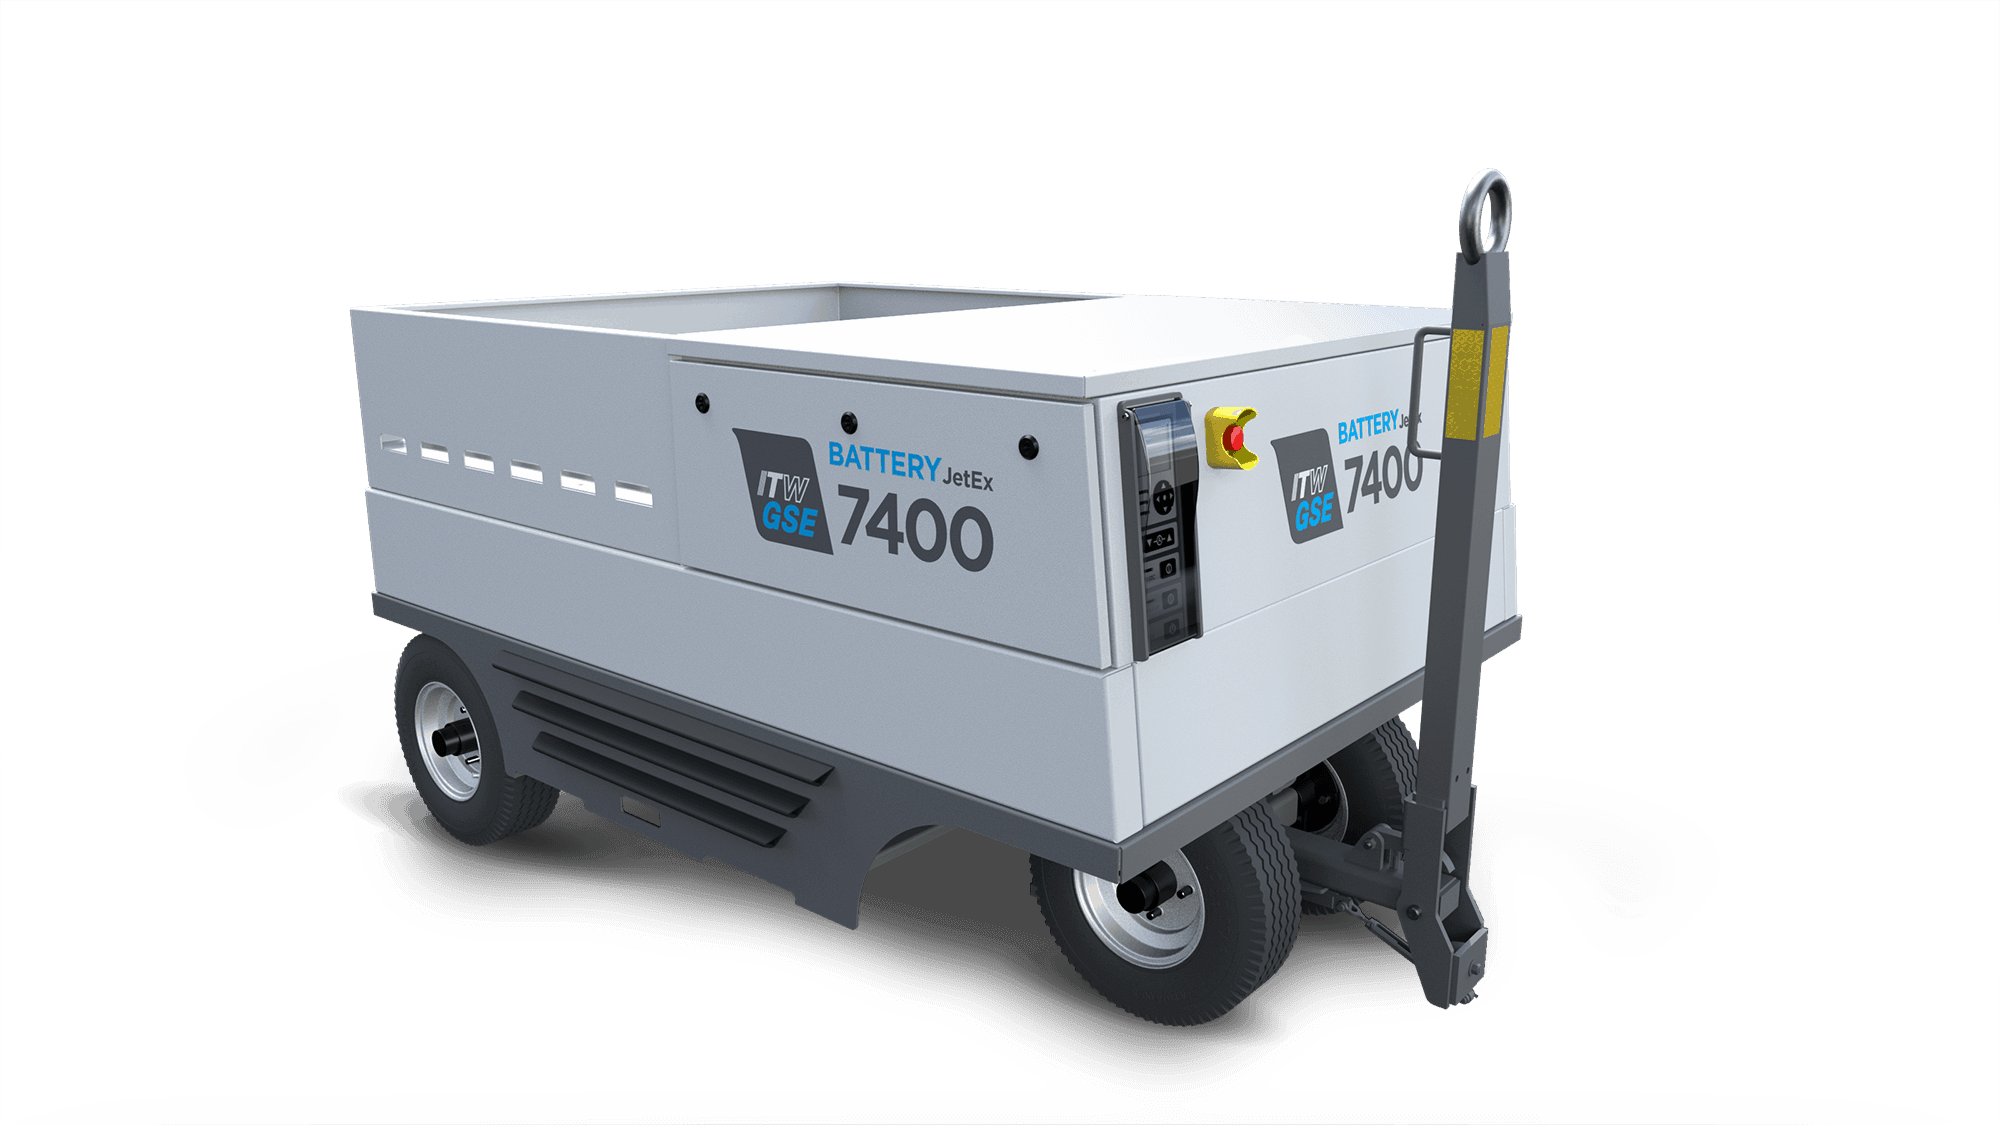 itwgse,itw gse, itw gse 7400 jetex, battery driven ground power unit, battery driven gpu, gpu, mobil gpu, itw gse 7400 jetex, itwsge7400jetex